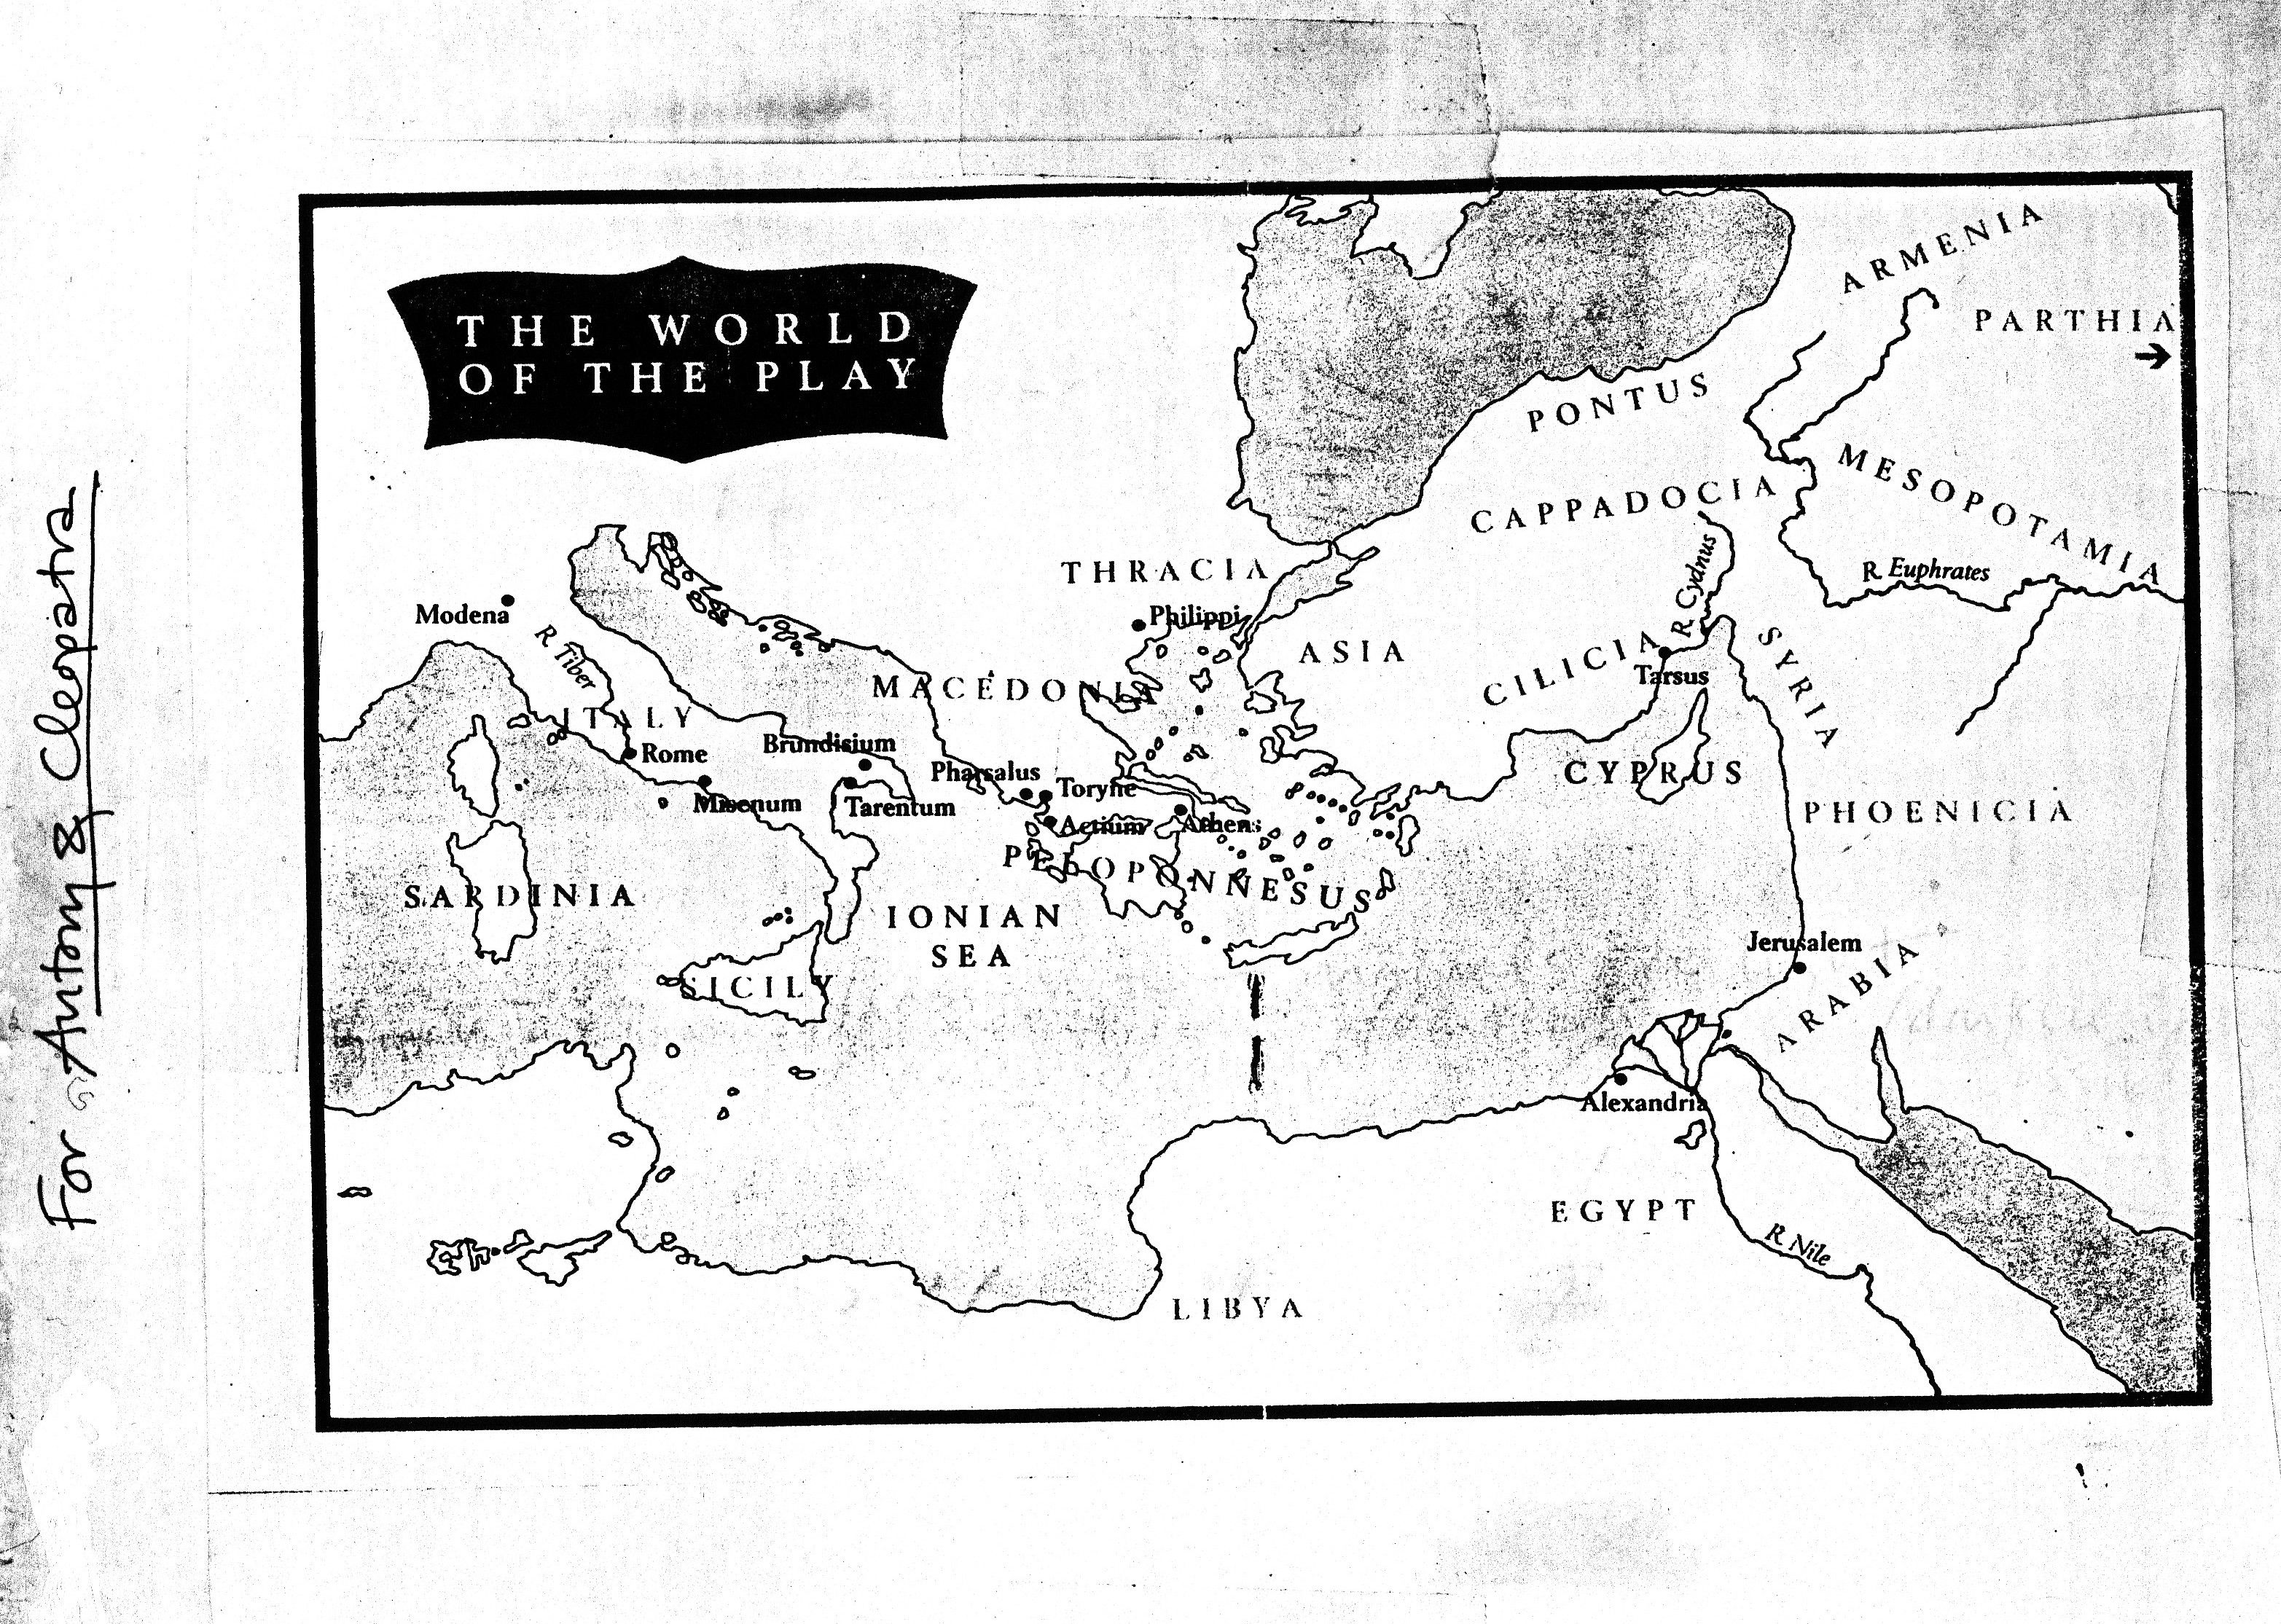 The Map Shows The Geographical World Of Antony And